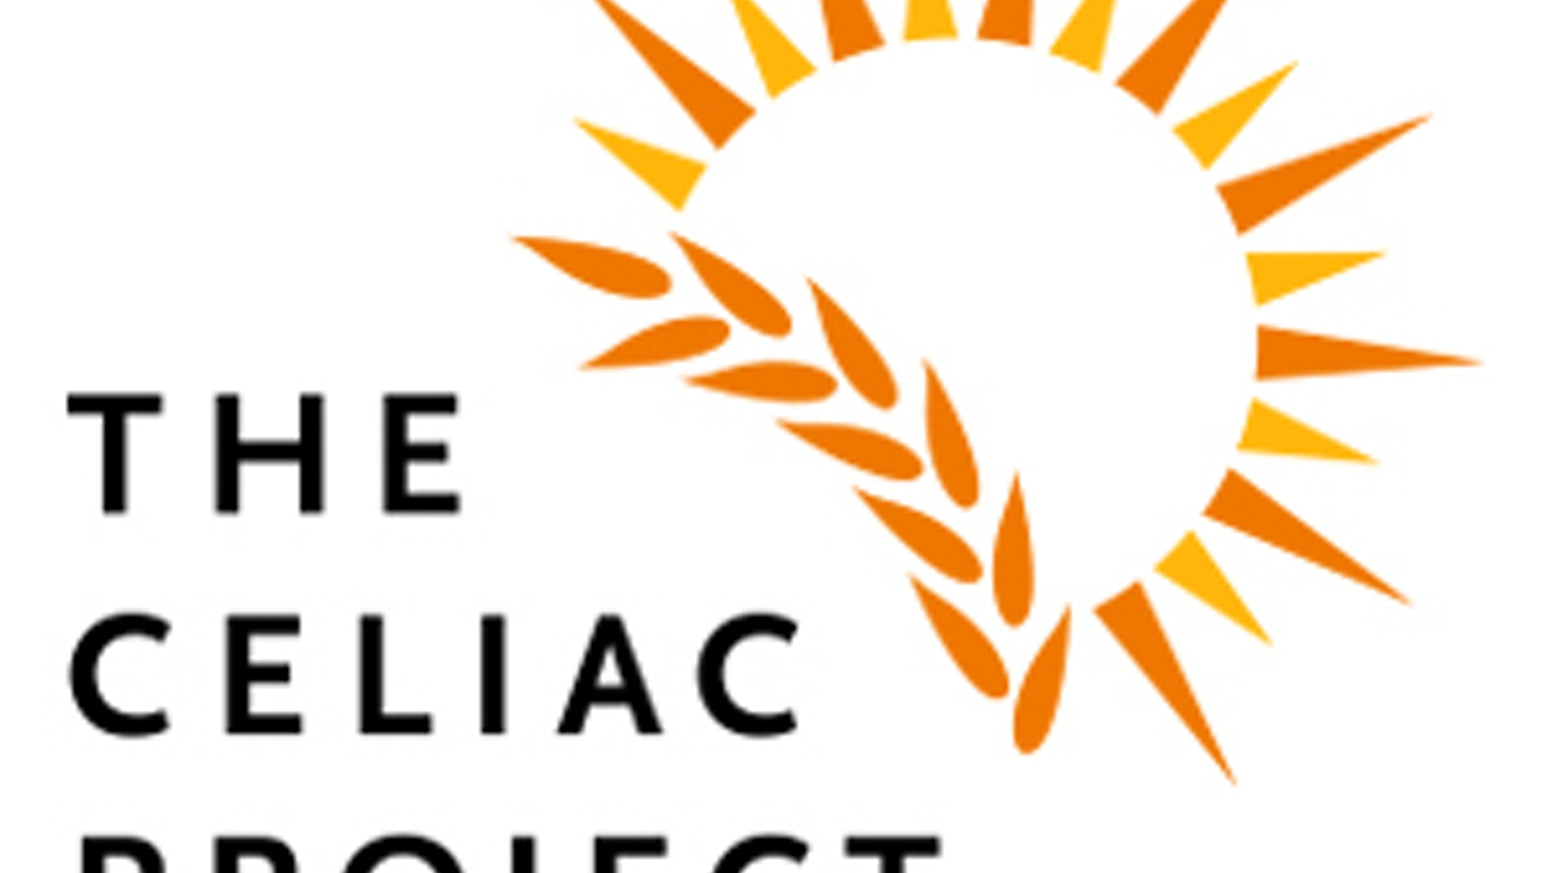 The Celiac Project by Michael W  Frolichstein » Join us for